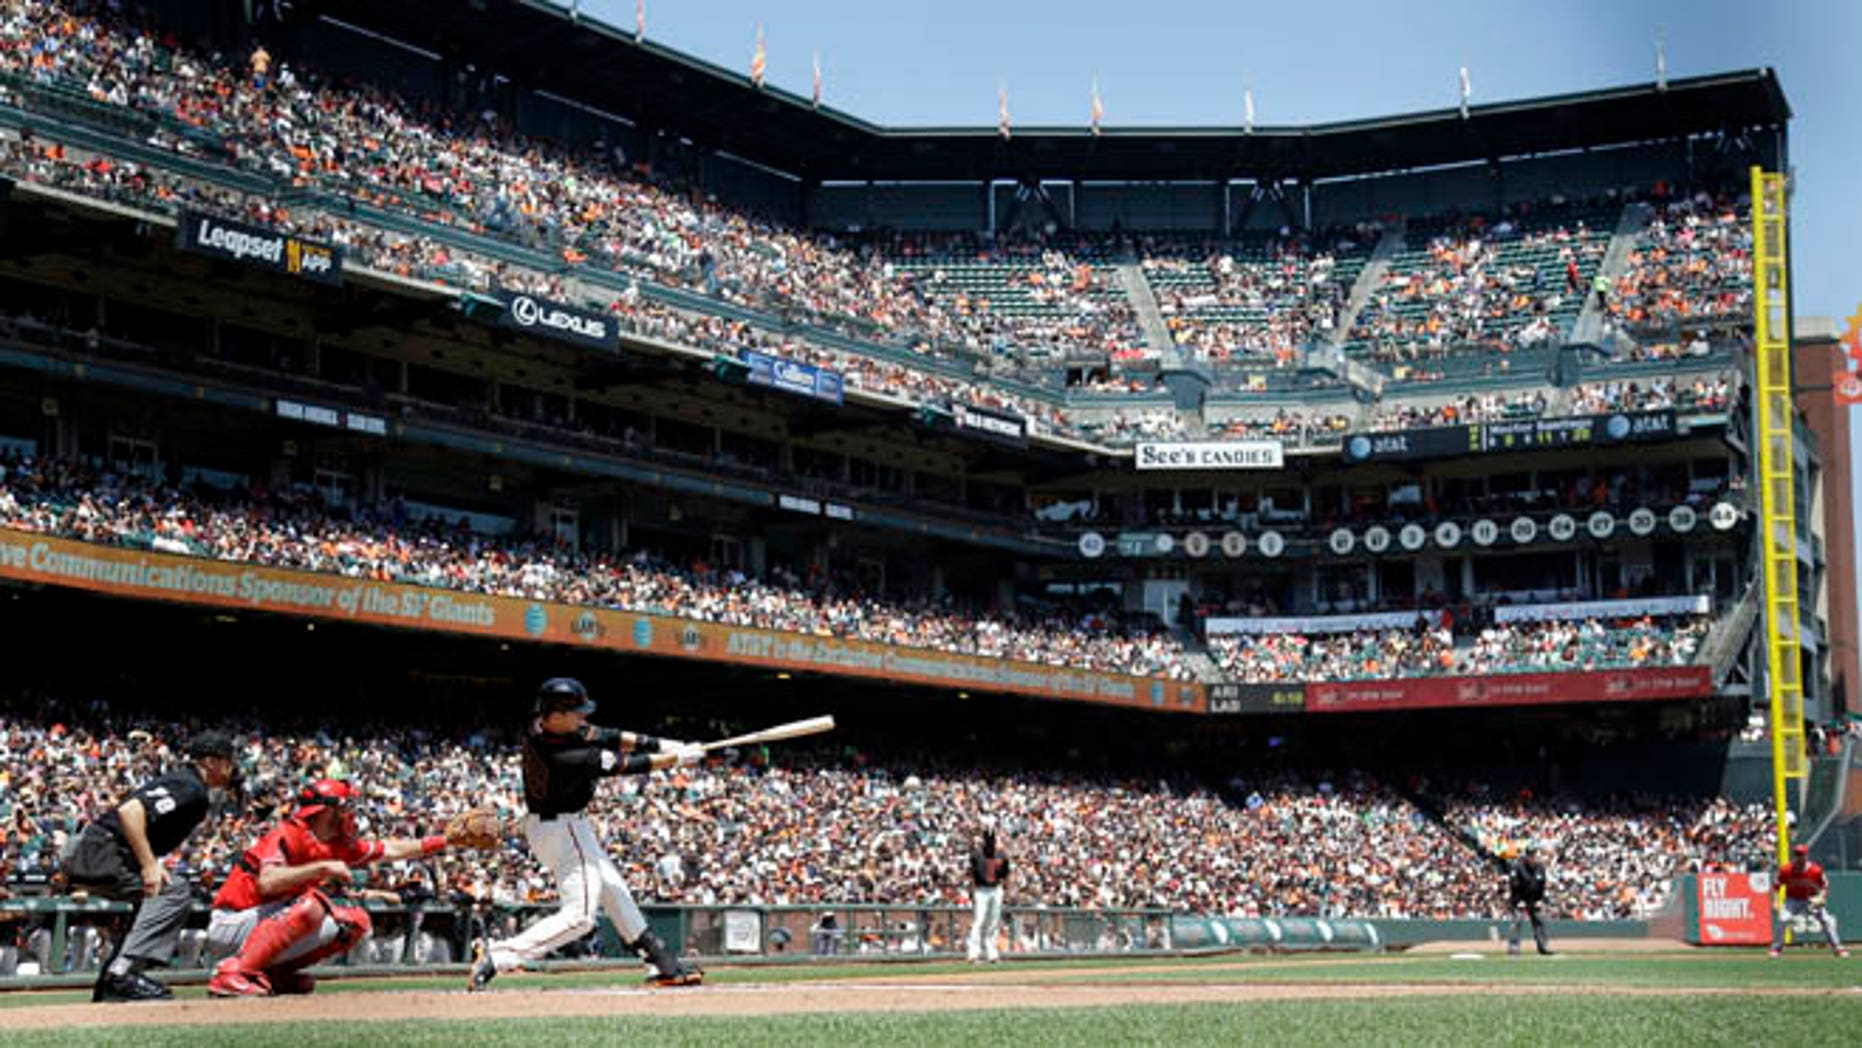 May 2, 2015: San Francisco Giants' Buster Posey hits a double against the Los Angeles Angels in San Francisco.